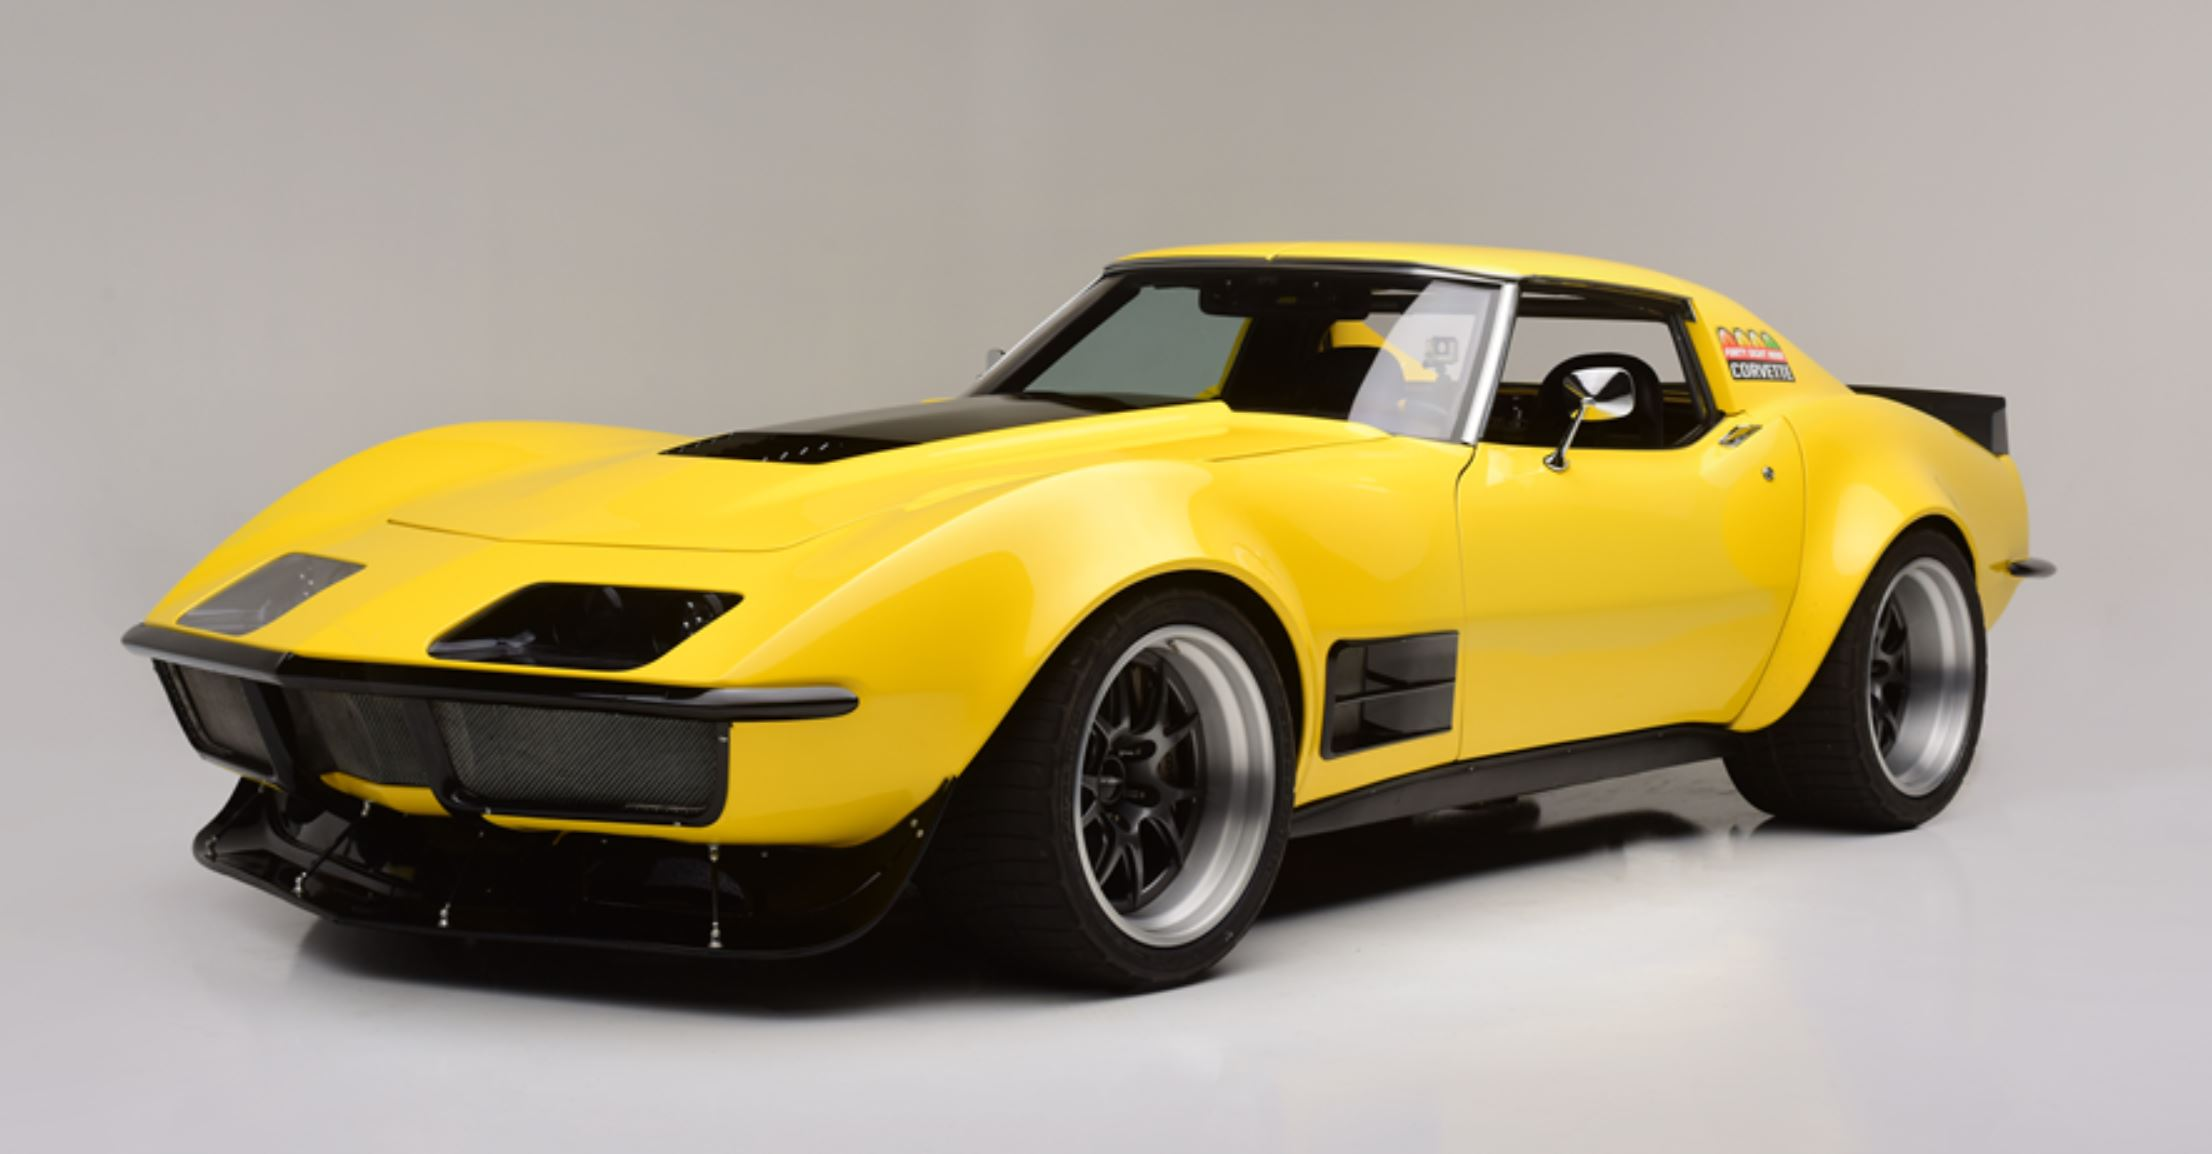 Ridetech's 48-Hour Corvette Is Going Up For Auction At Barrett-Jackson With No Reserve